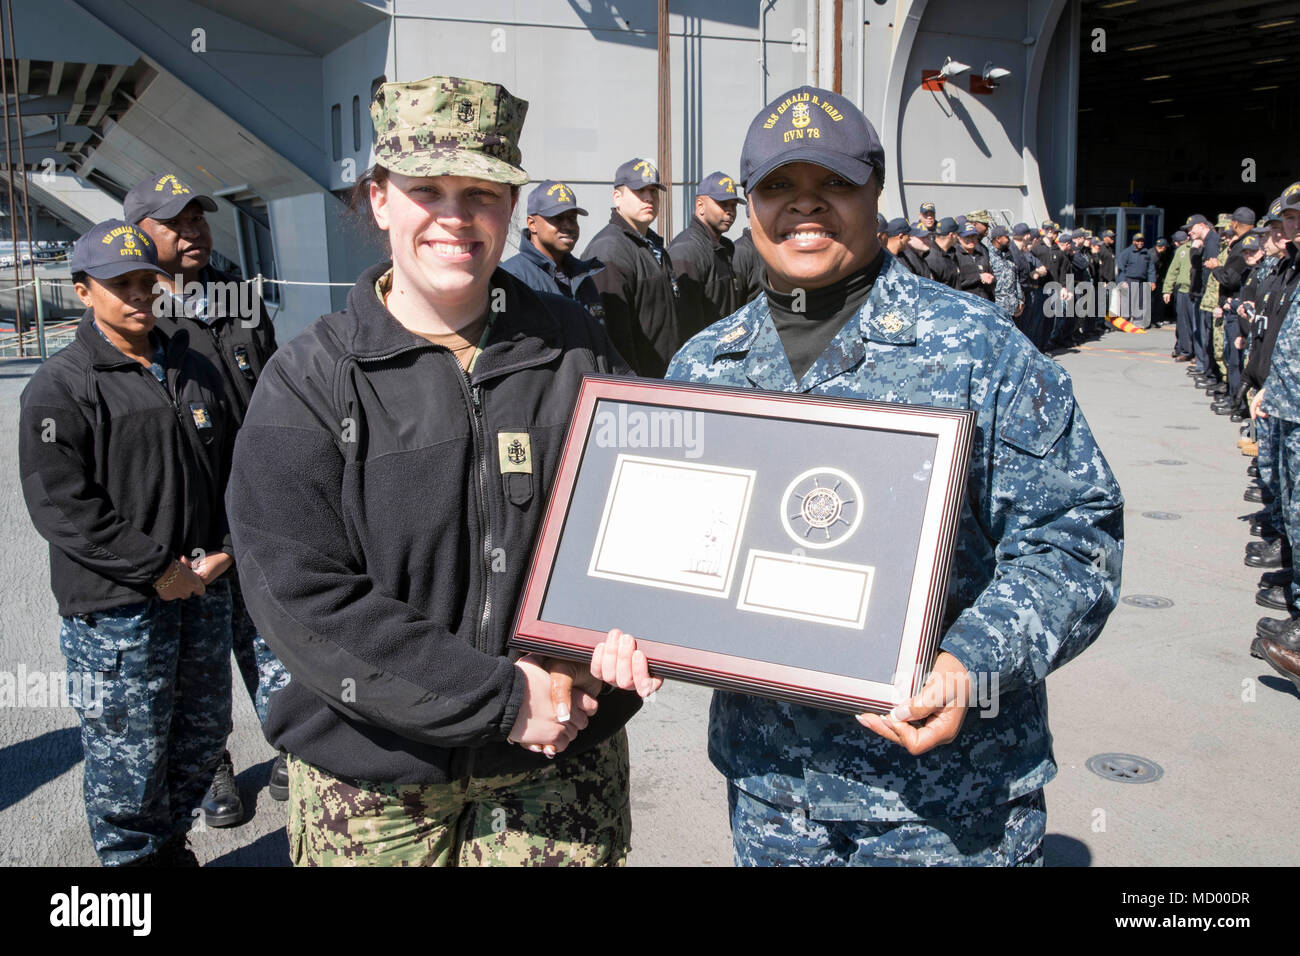 NORFOLK, Va. (Mar. 9, 2018) -- Chief Electrician's Mate (Nuclear) Sarah Gideon receives a plaque from USS Gerald R. Ford's (CVN 78) Chiefs Mess as she departs the command. (U.S. Navy photo by Mass Communication Specialist 3rd Class Joshua Murray) - Stock Image